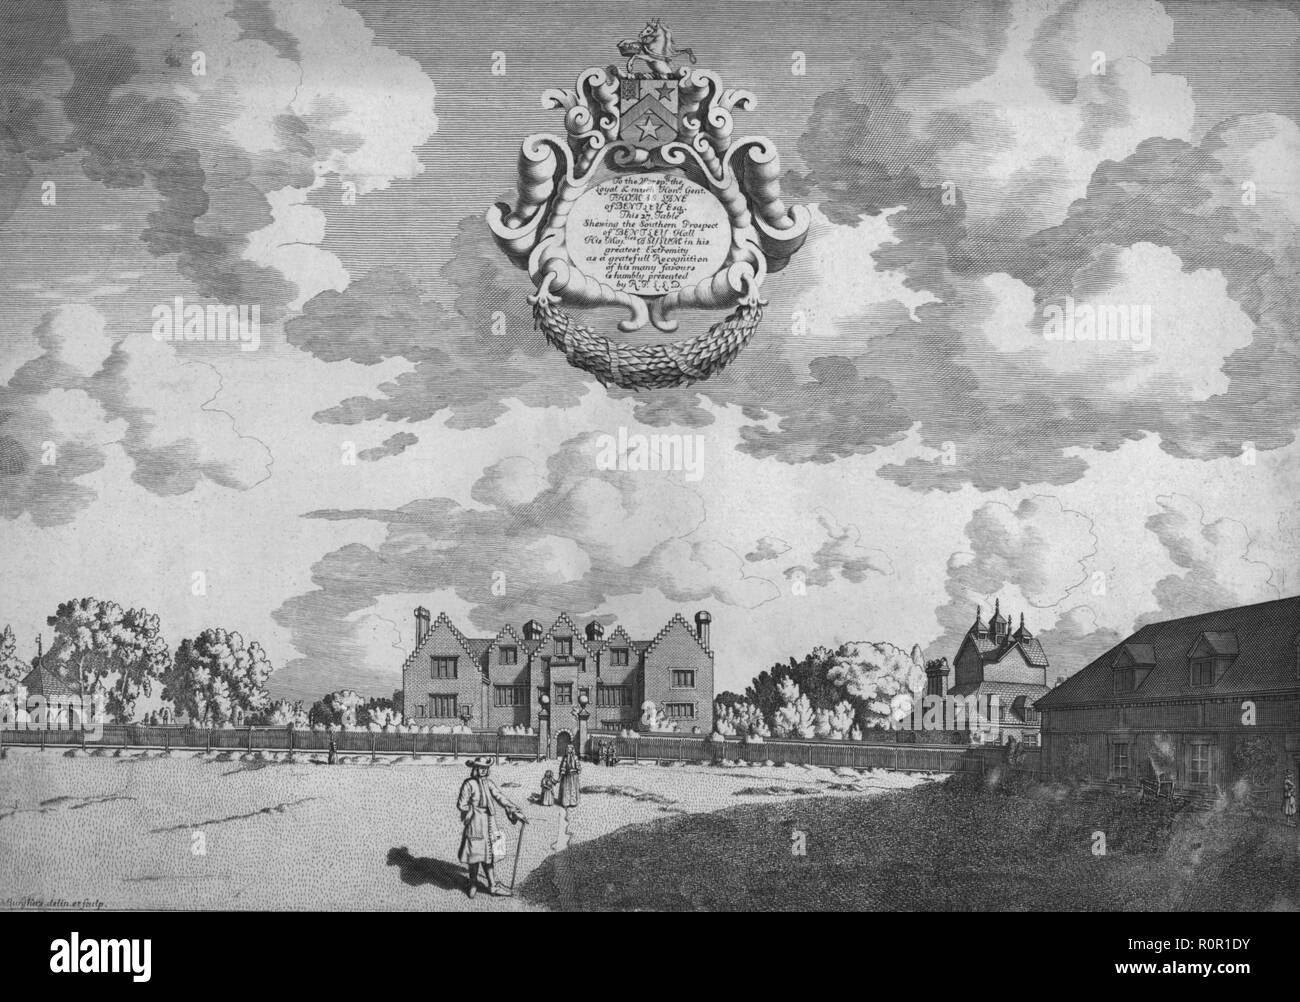 'Bentley Hall (Southern Prospect)', c1686. View of Bentley Hall in Staffordshire, known as one of the country houses where King Charles II hid during his flight after the Battle of Worcester in 1651. - Stock Image